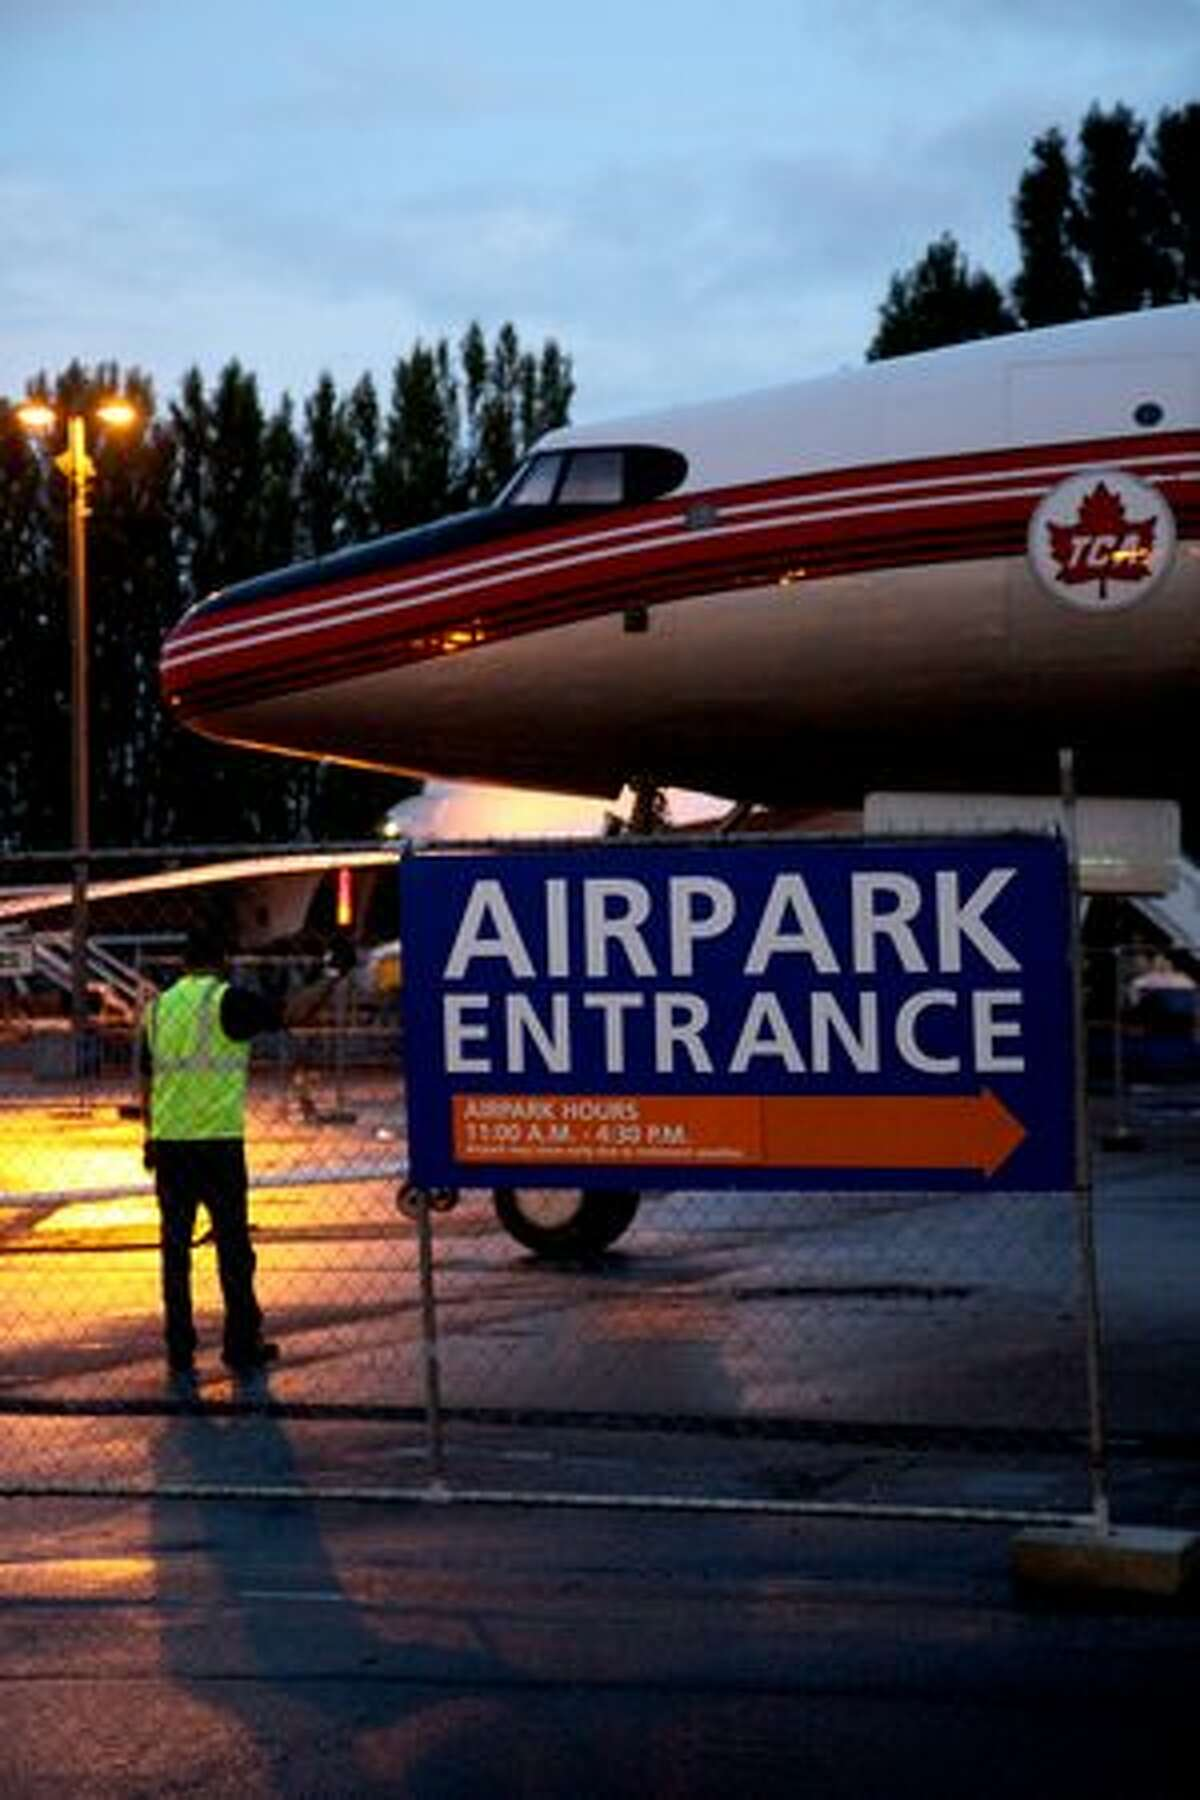 The Seattle Museum of Flight's Lockheed 1049G Super Constellation is towed into the museum's Airpark. (Ted Huetter/Museum of Flight)